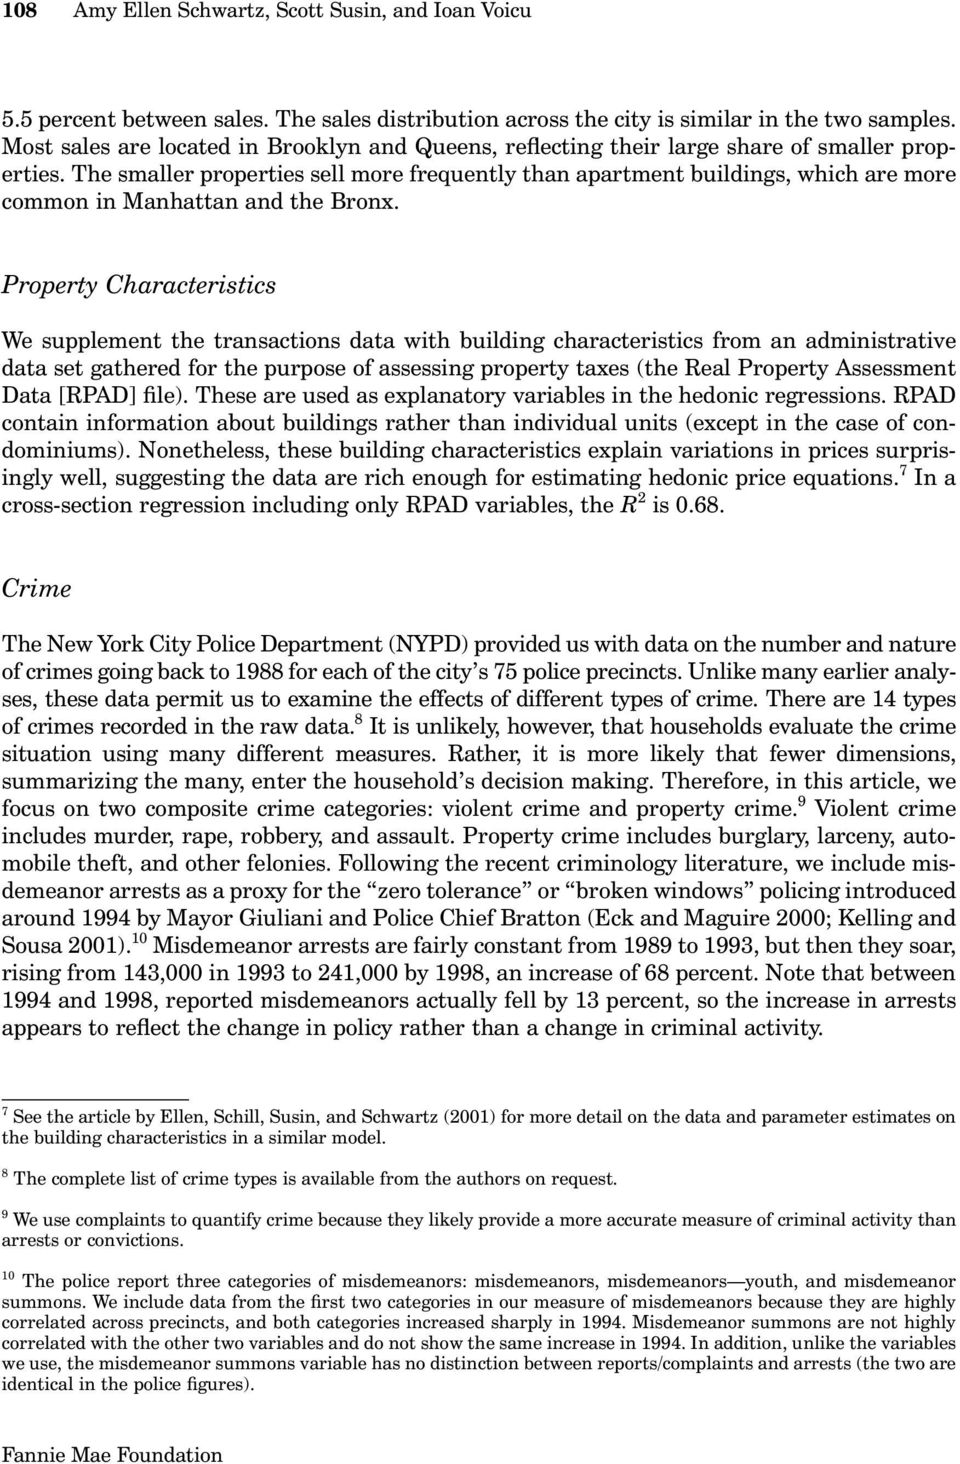 The smaller properties sell more frequently than apartment buildings, which are more common in Manhattan and the Bronx.